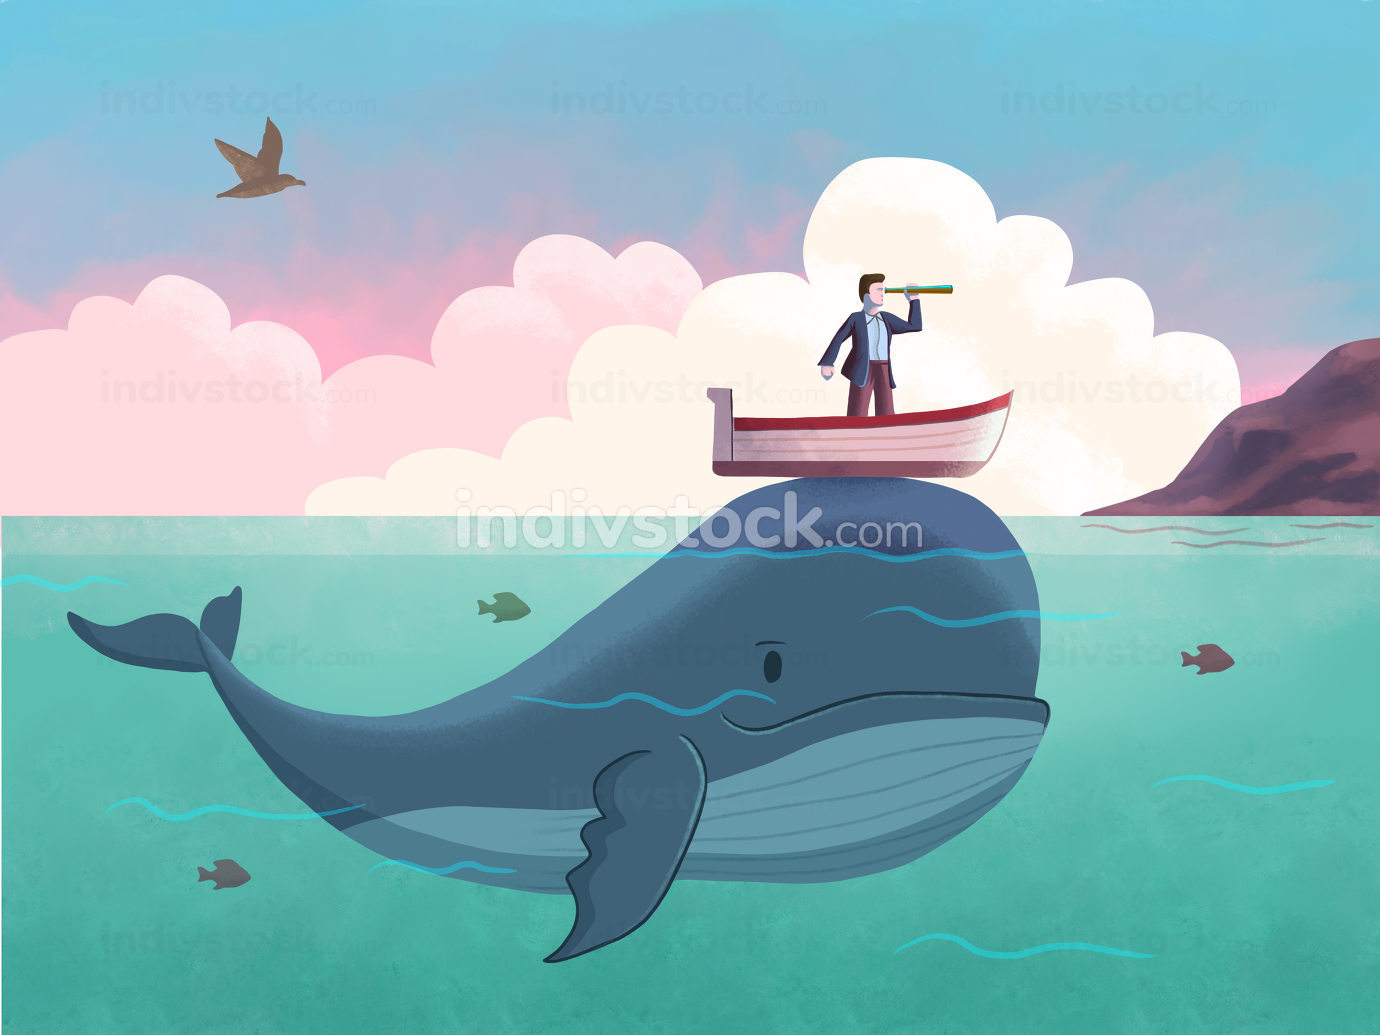 Whale helping man on a boat